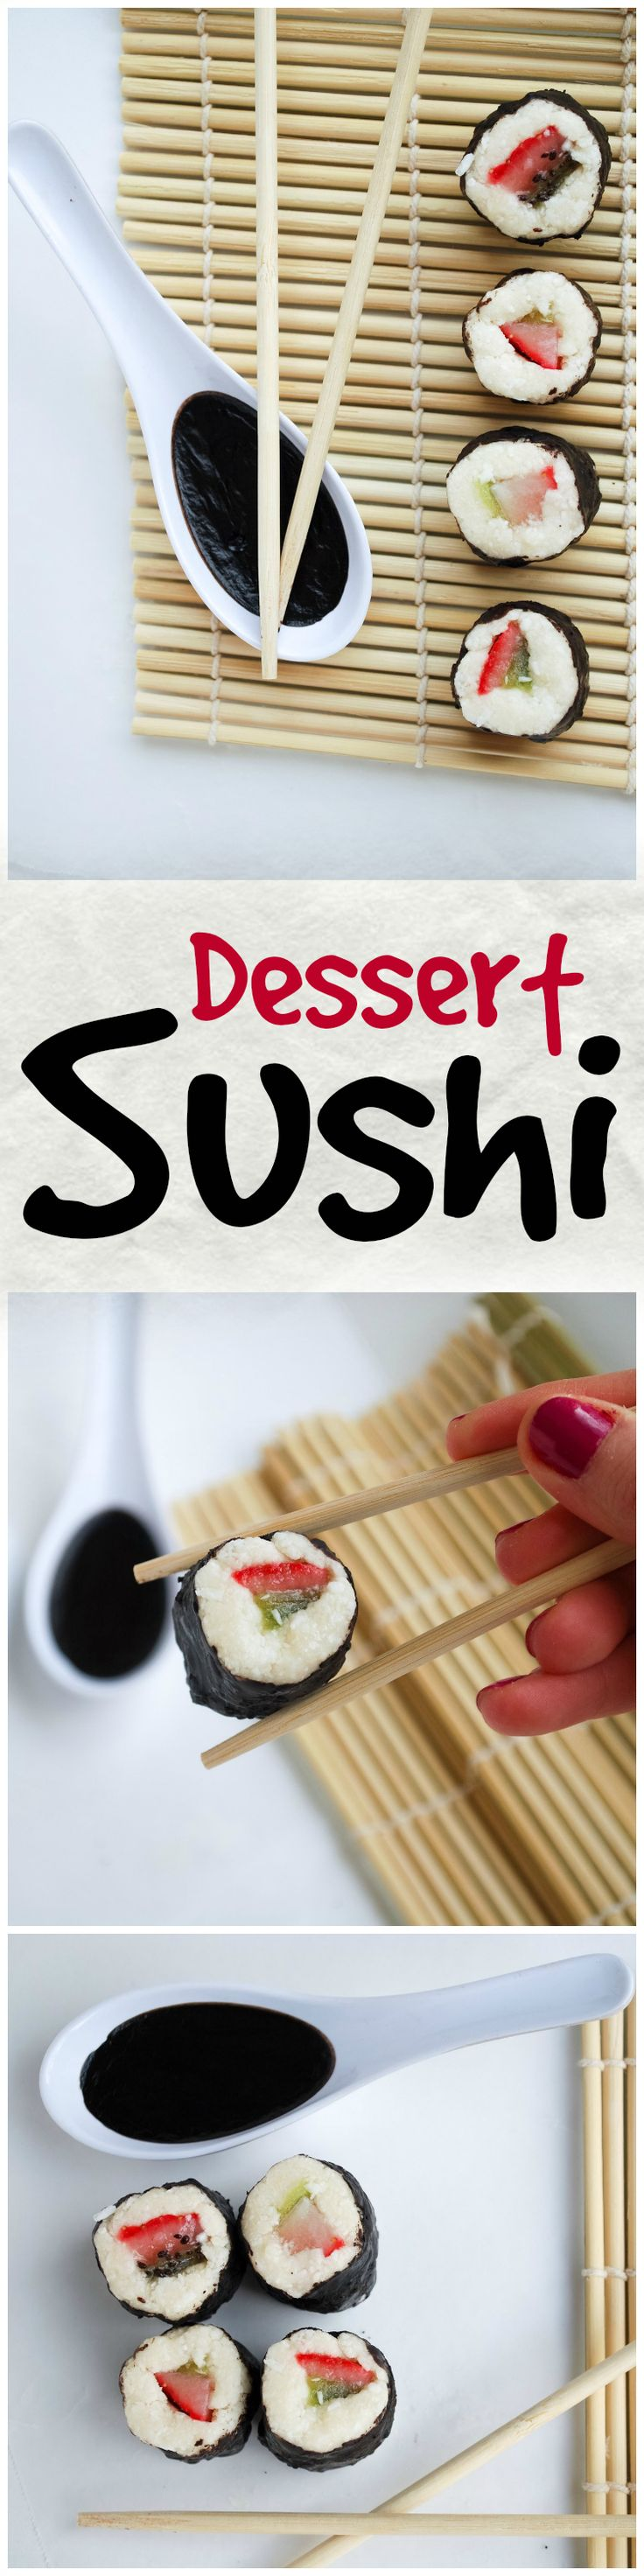 Dessert Sushi: A whimsical vegan and gluten free dessert that is sure to impress! Made with good-for-you whole food ingredients, this dessert is a healthy take on the Asian specialty! || fooduzzi.com